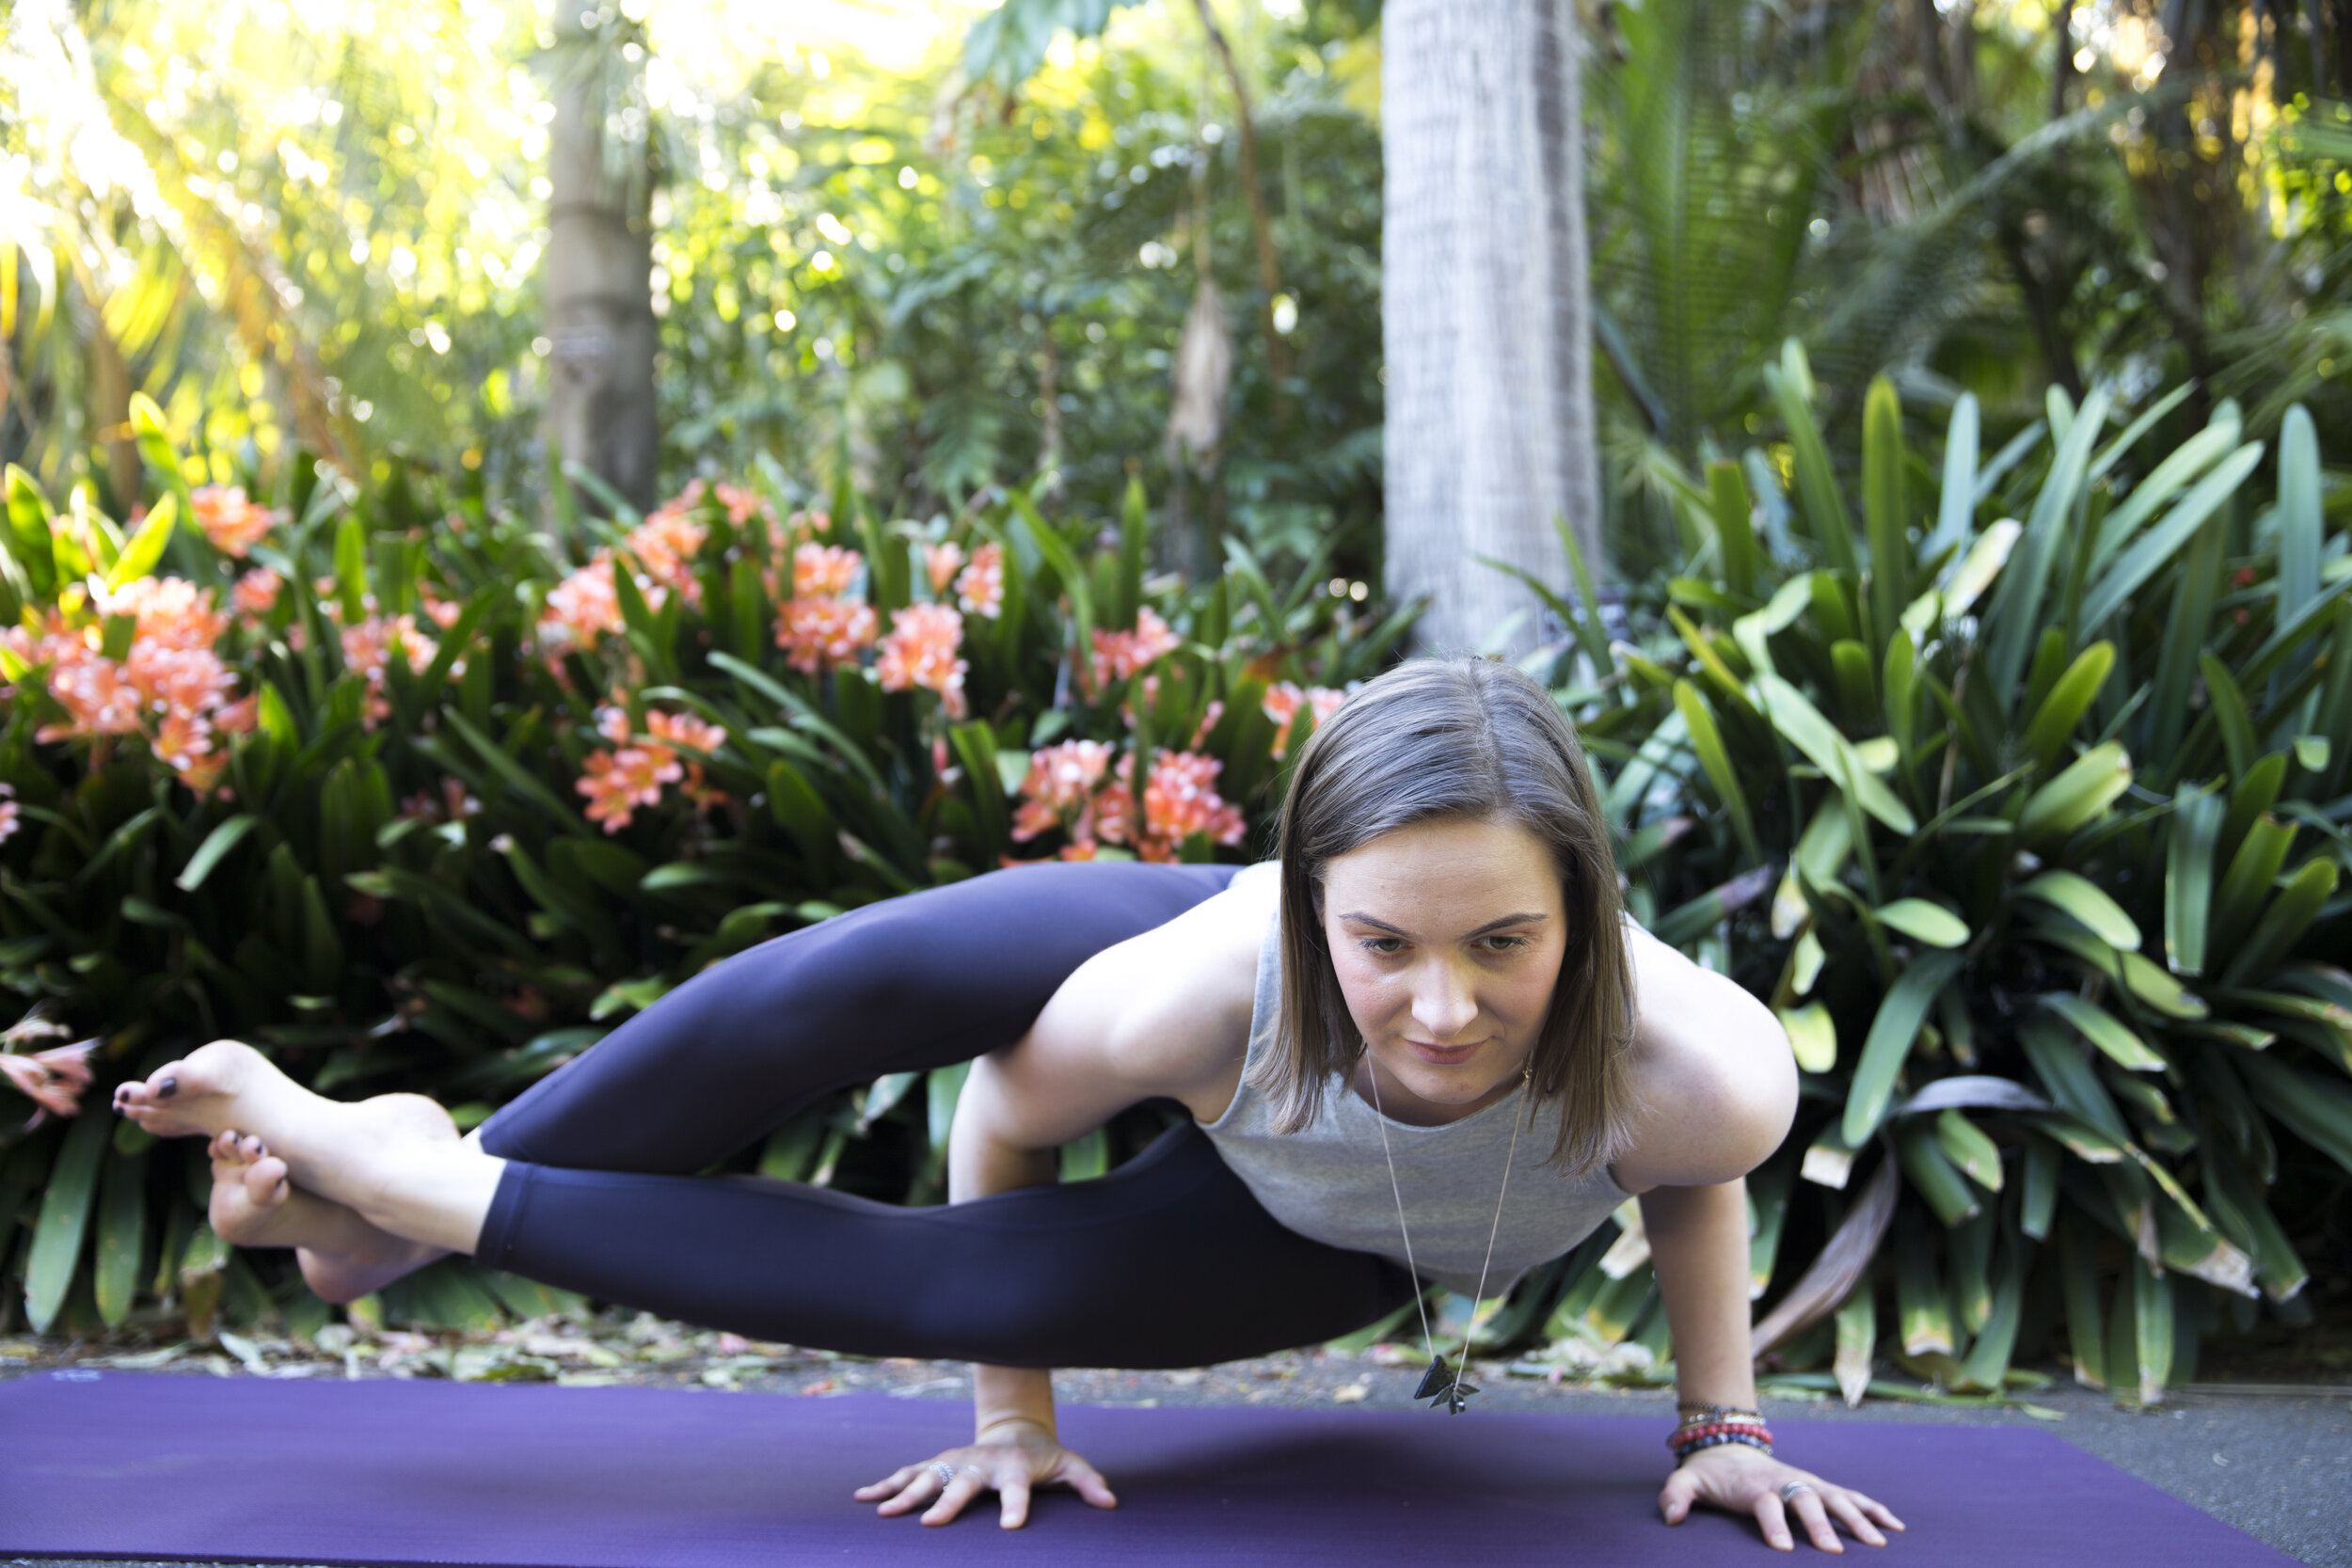 Yoga Classes - Click the image for Group Classes, Workshops & 1:1 Yoga Mentoring in Mawson Lakes